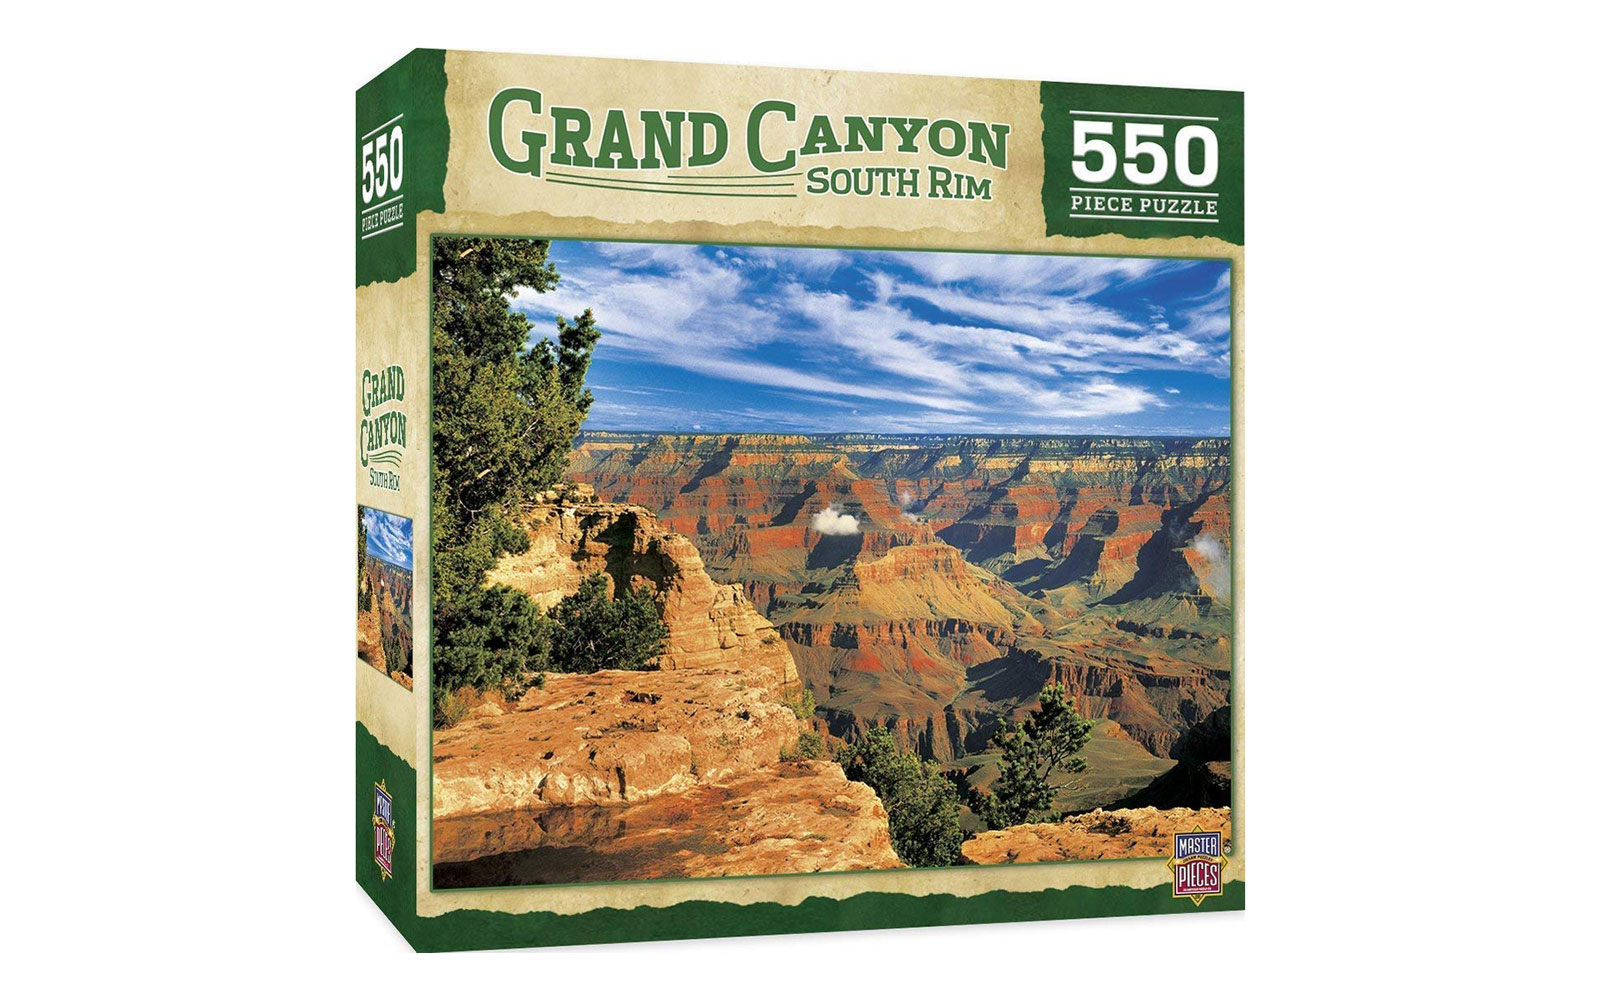 Grand Canyon puzzle